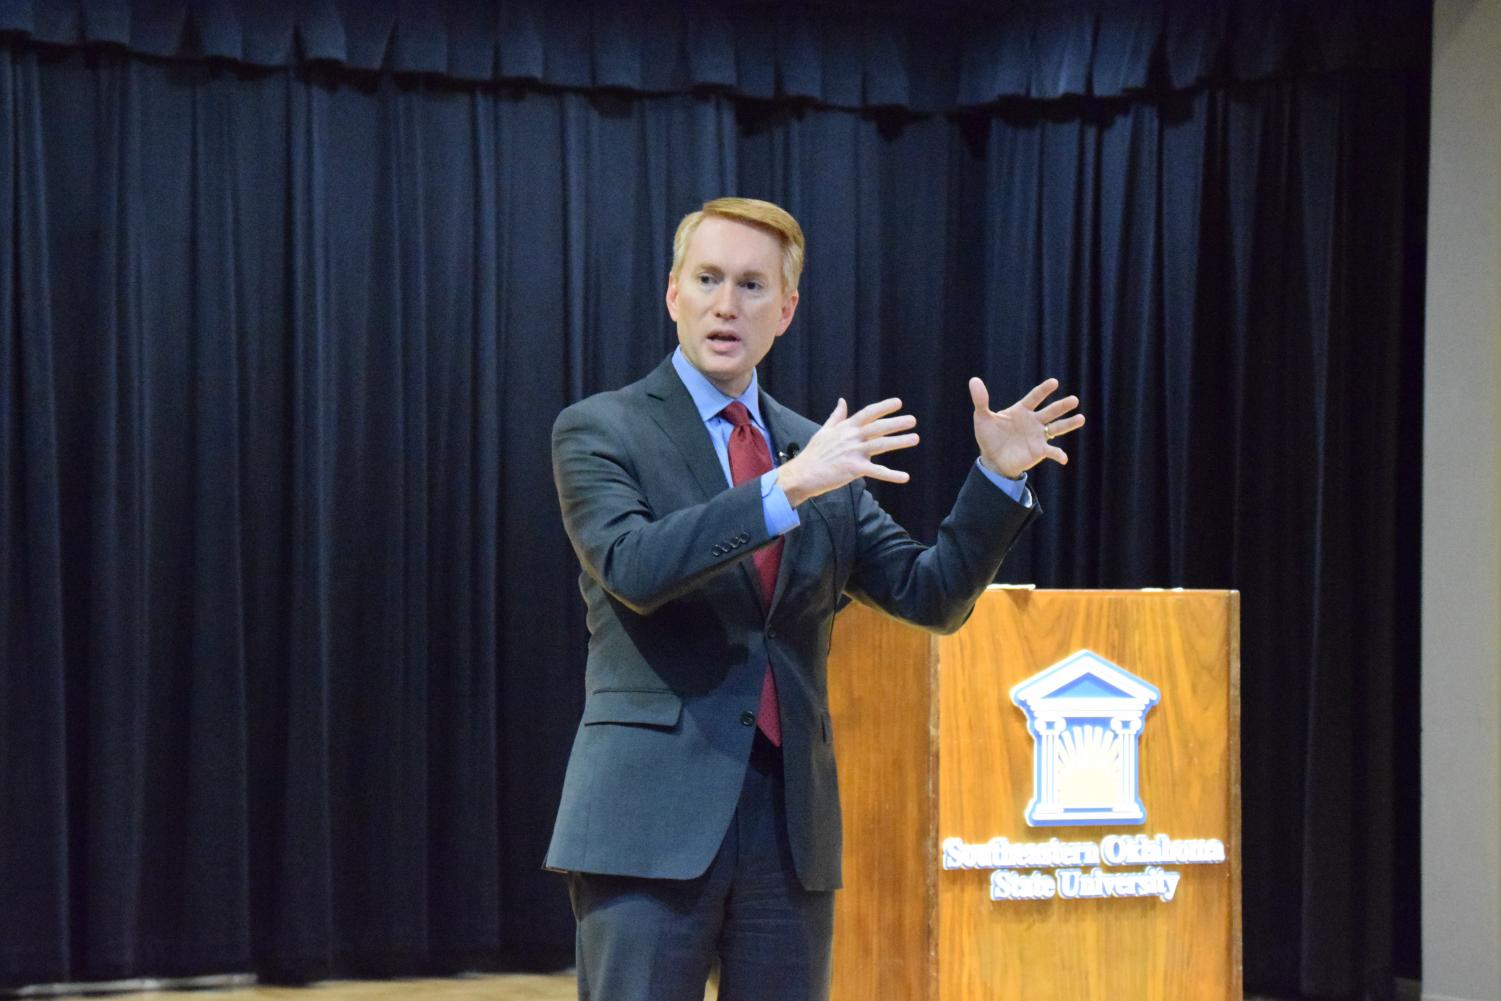 Senator James Lankford speaks to Southeastern students, faculty and staff in the Fine Arts Recital Hall on February 21. Lankford addressed issues of concern in the United States Senate.